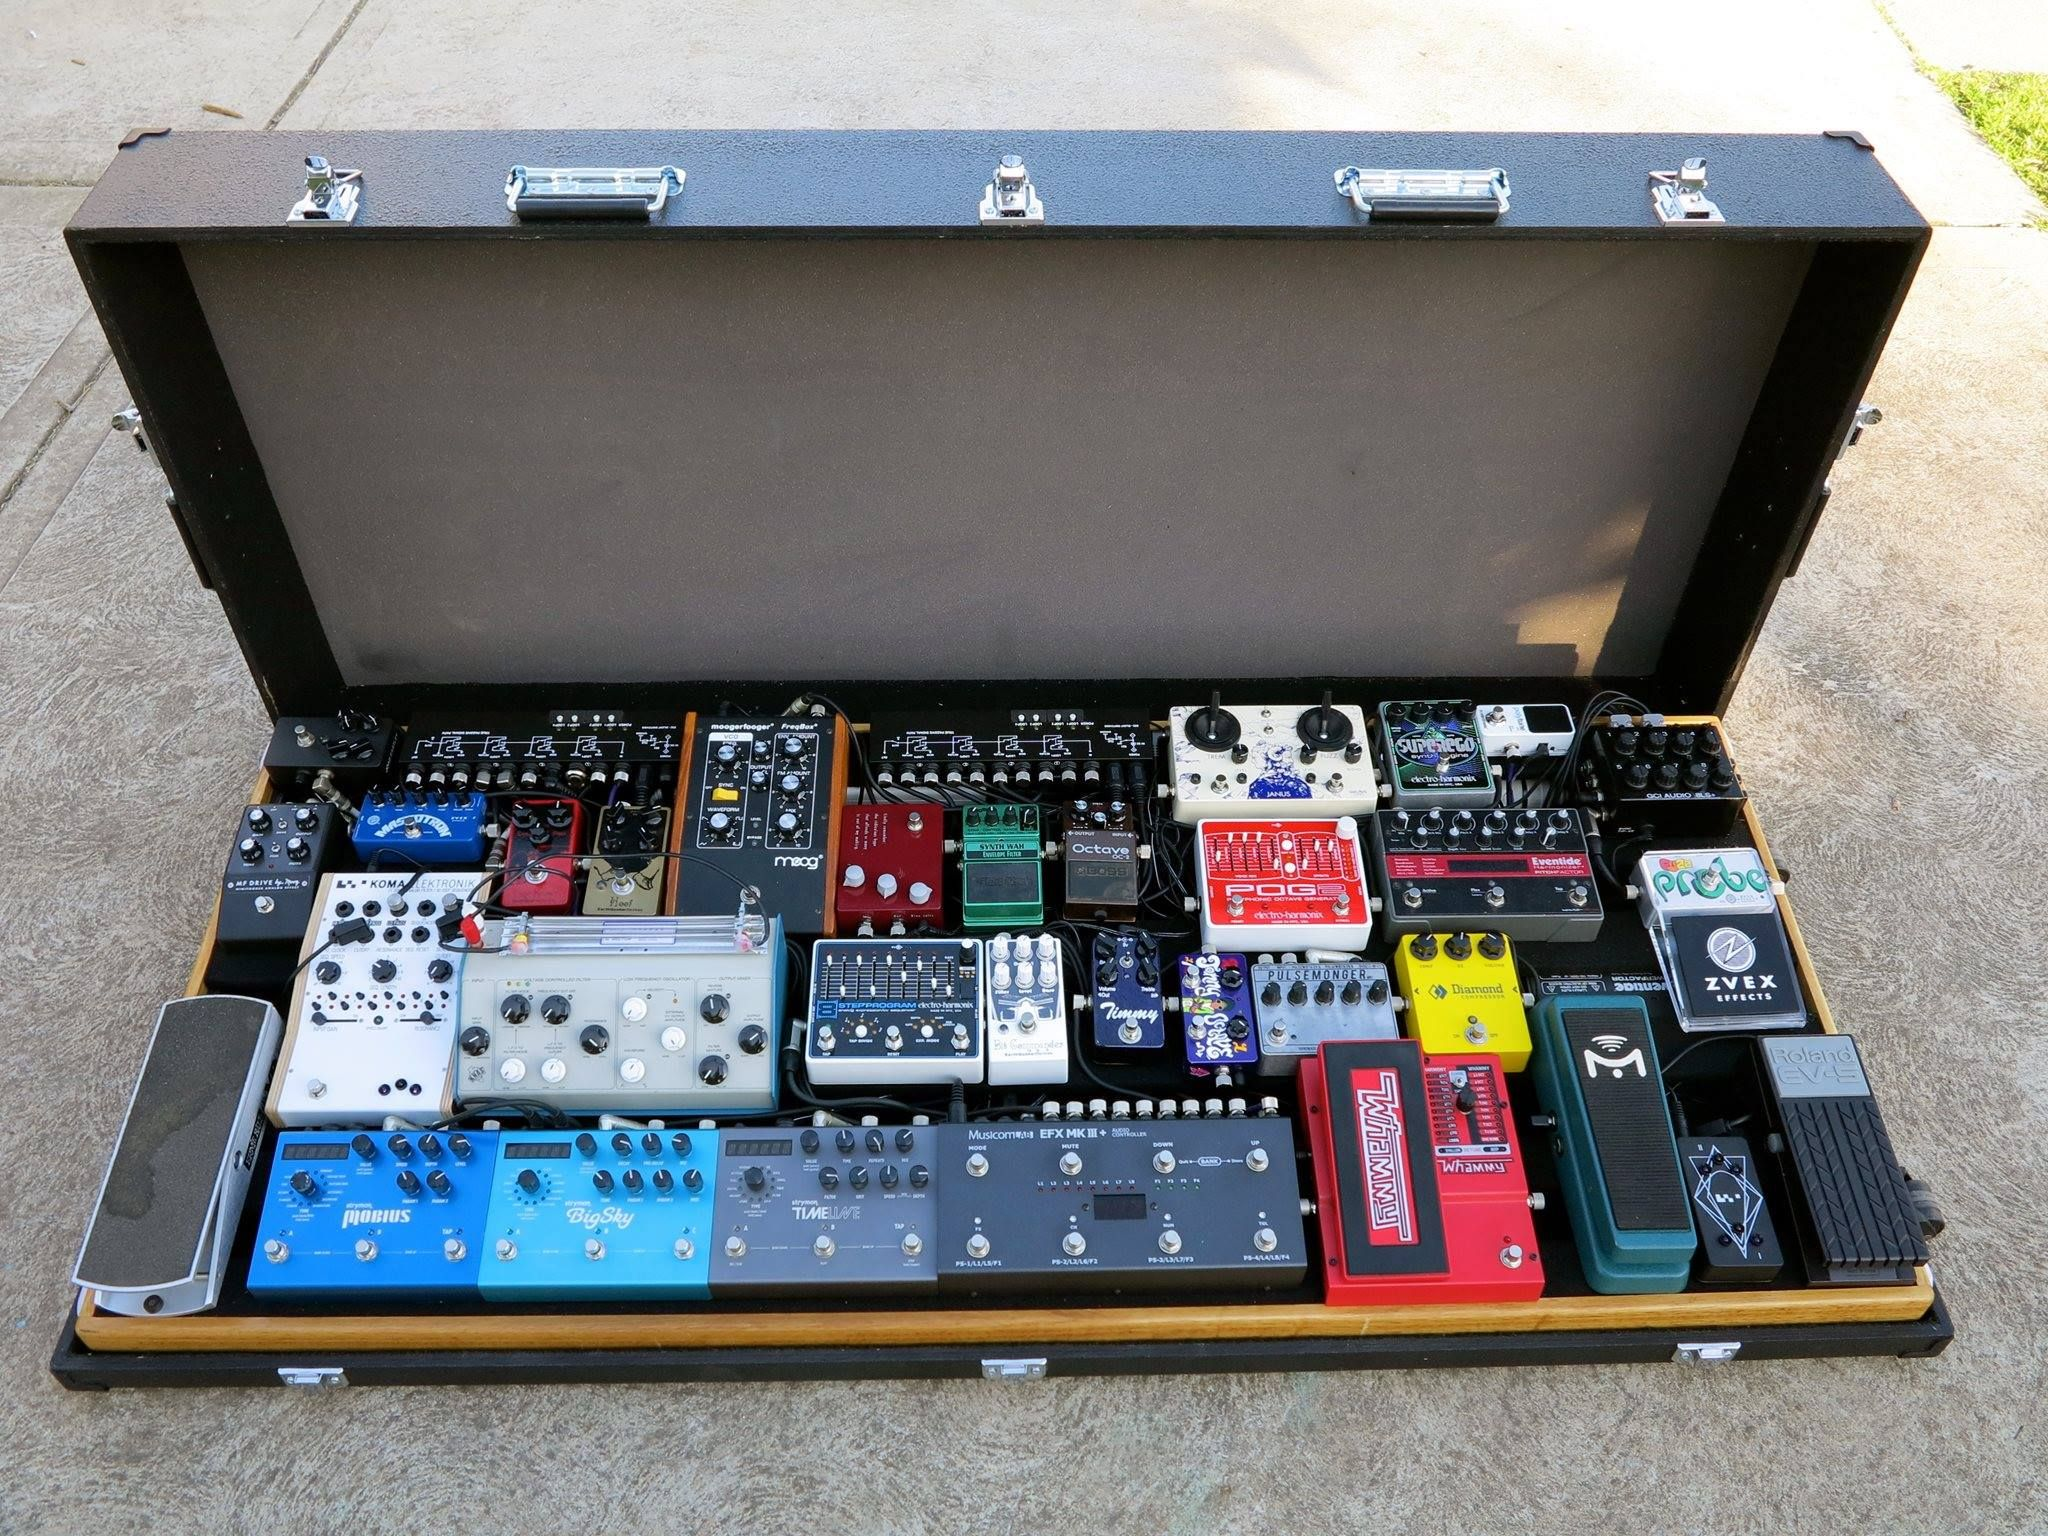 joab 39 s spaceship pedalboard this has got to be one of the largest guitar pedal boards i 39 ve ever. Black Bedroom Furniture Sets. Home Design Ideas